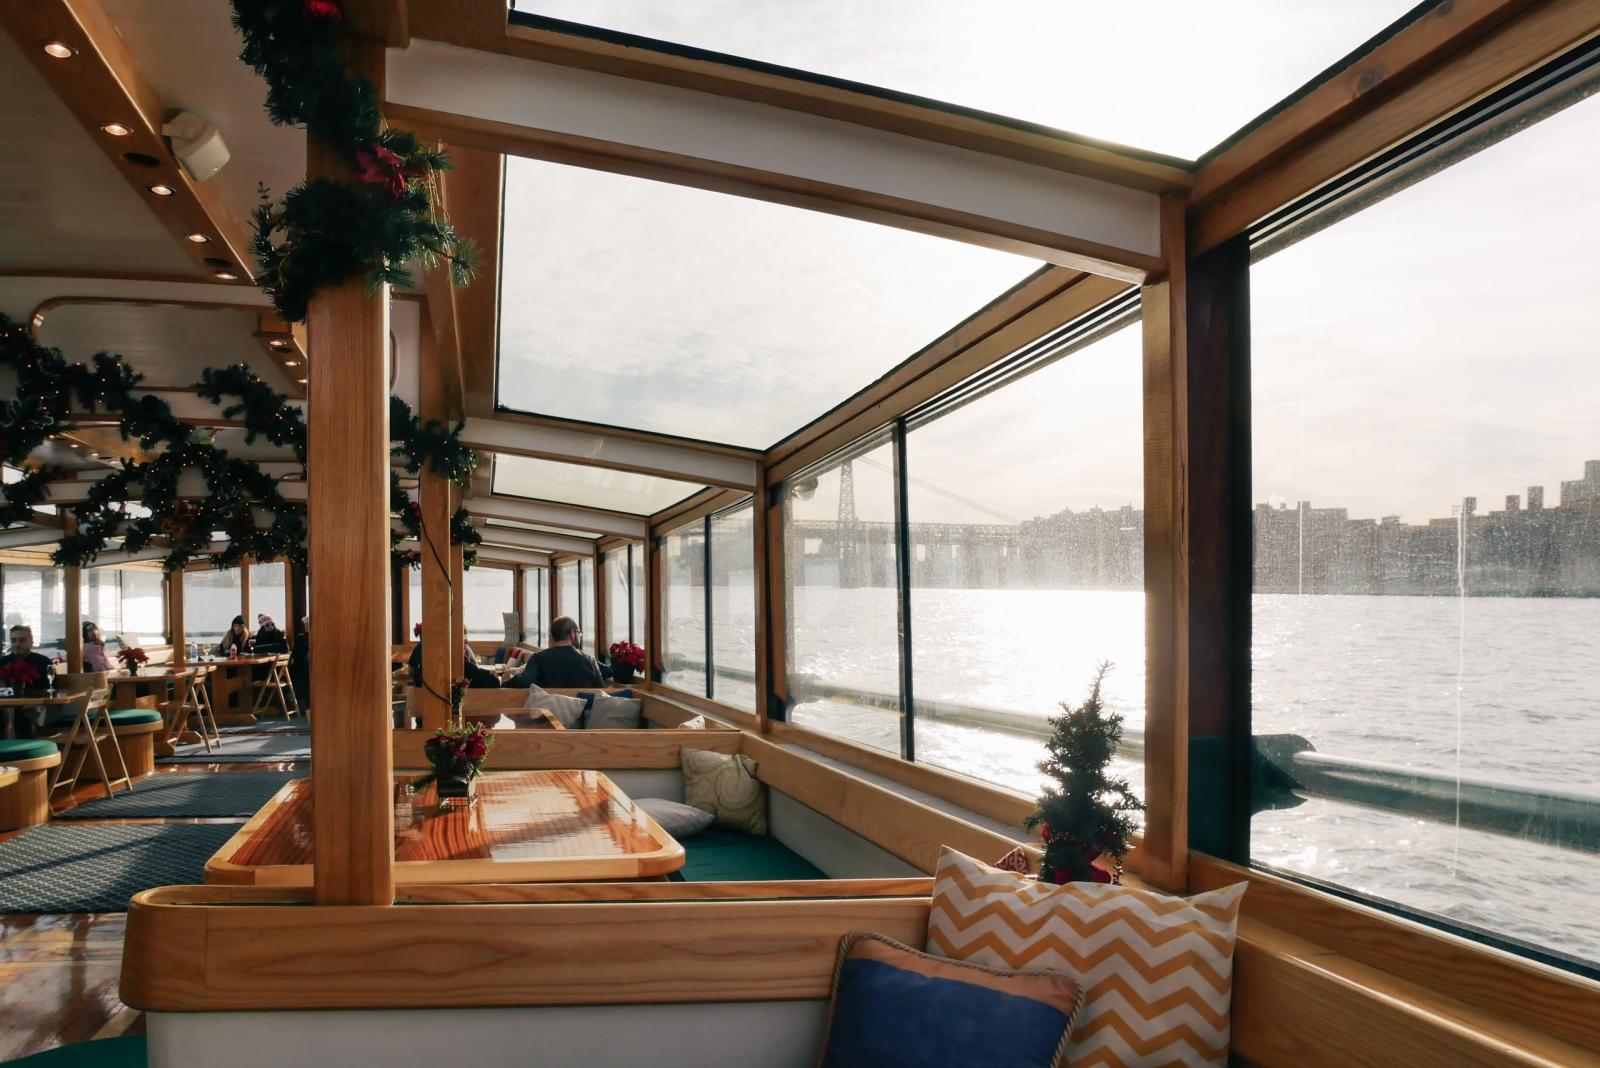 Cabin on the yacht Manhattan